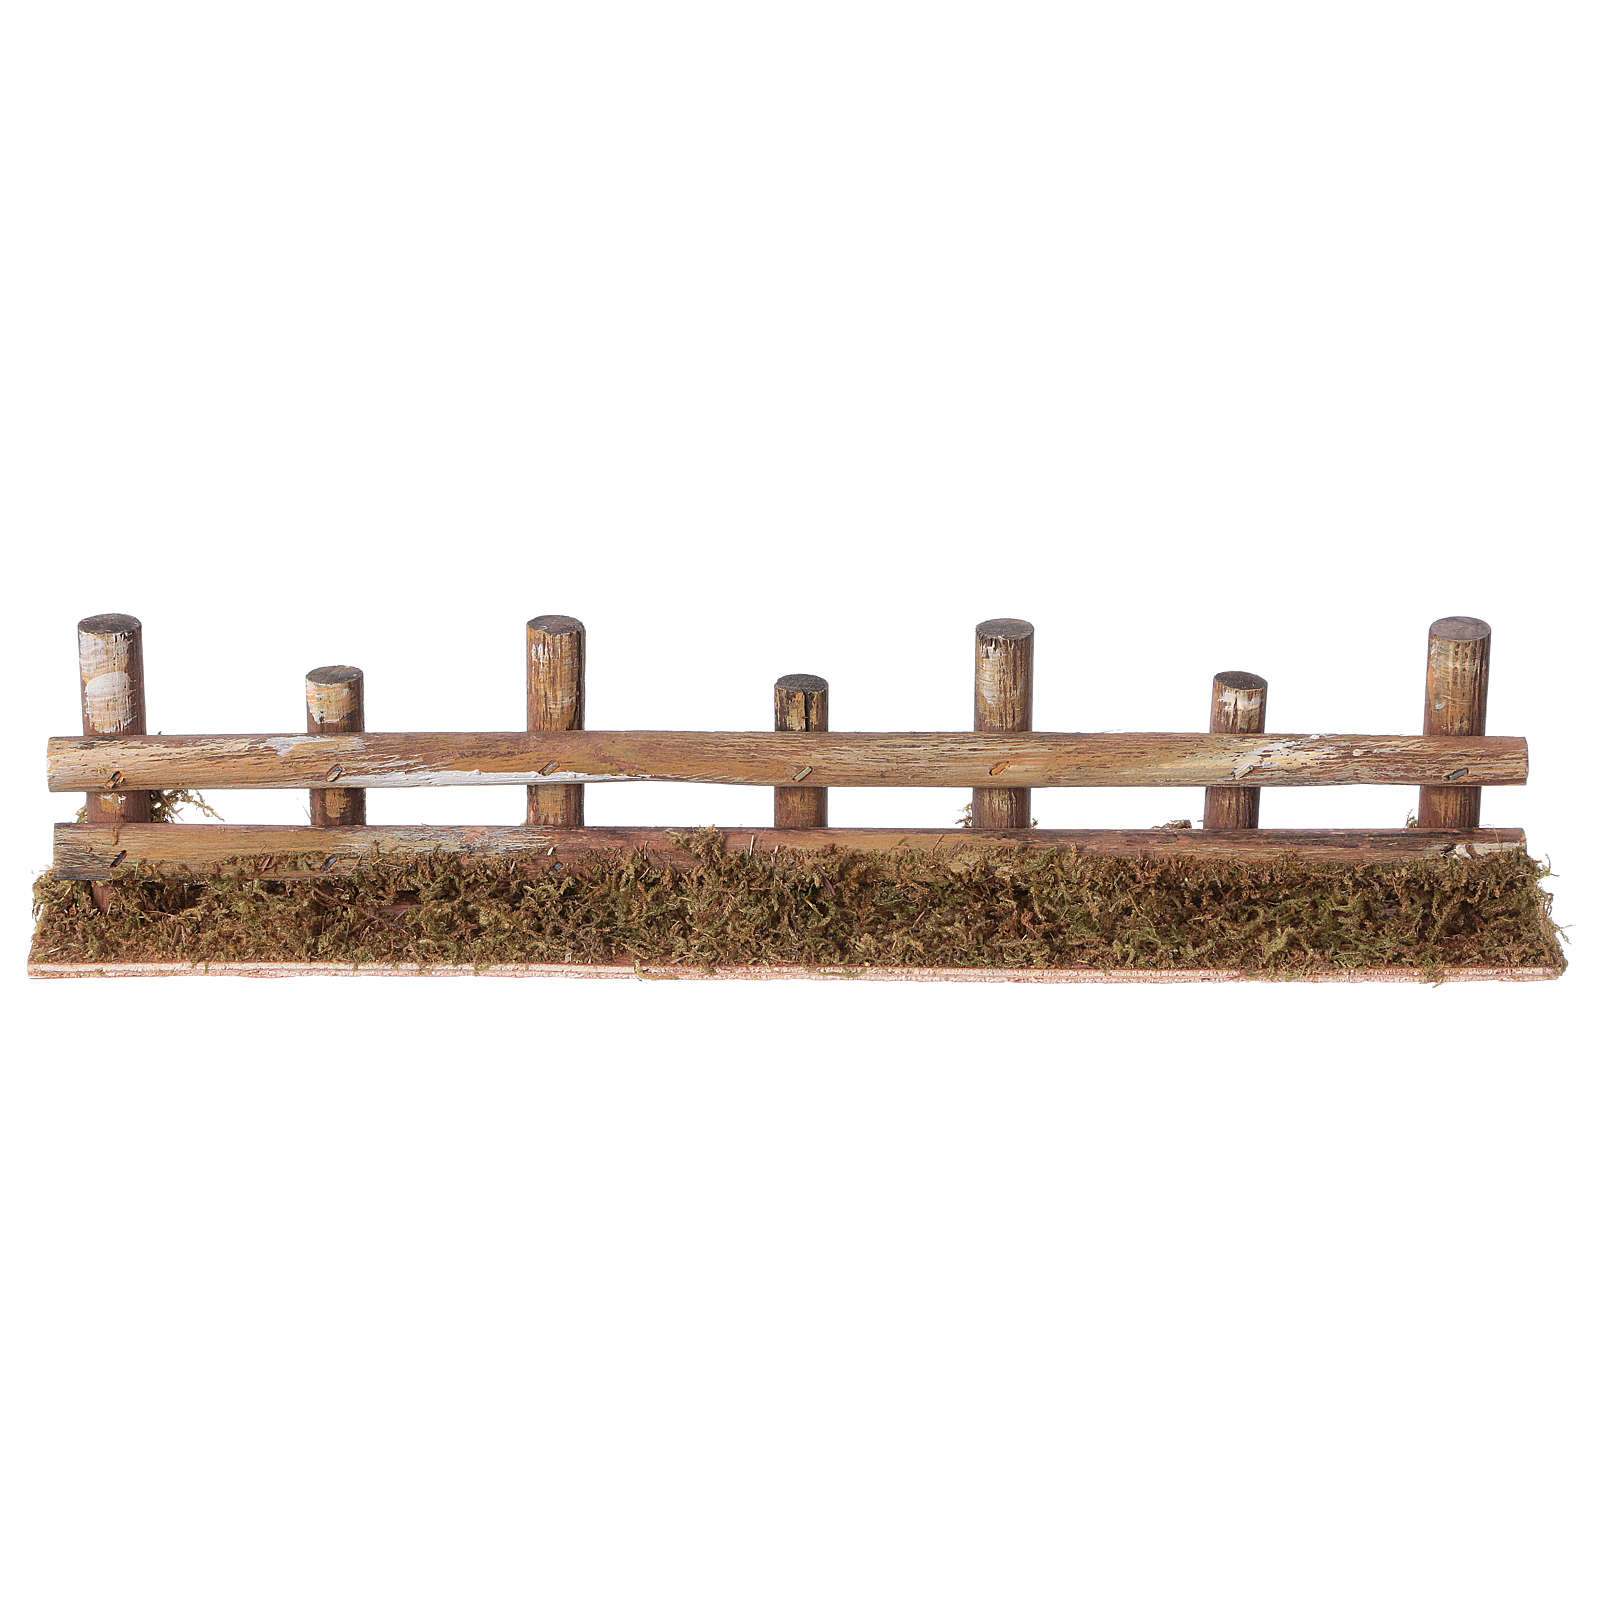 Nativity setting, fence with logs 33x4,5cm 4